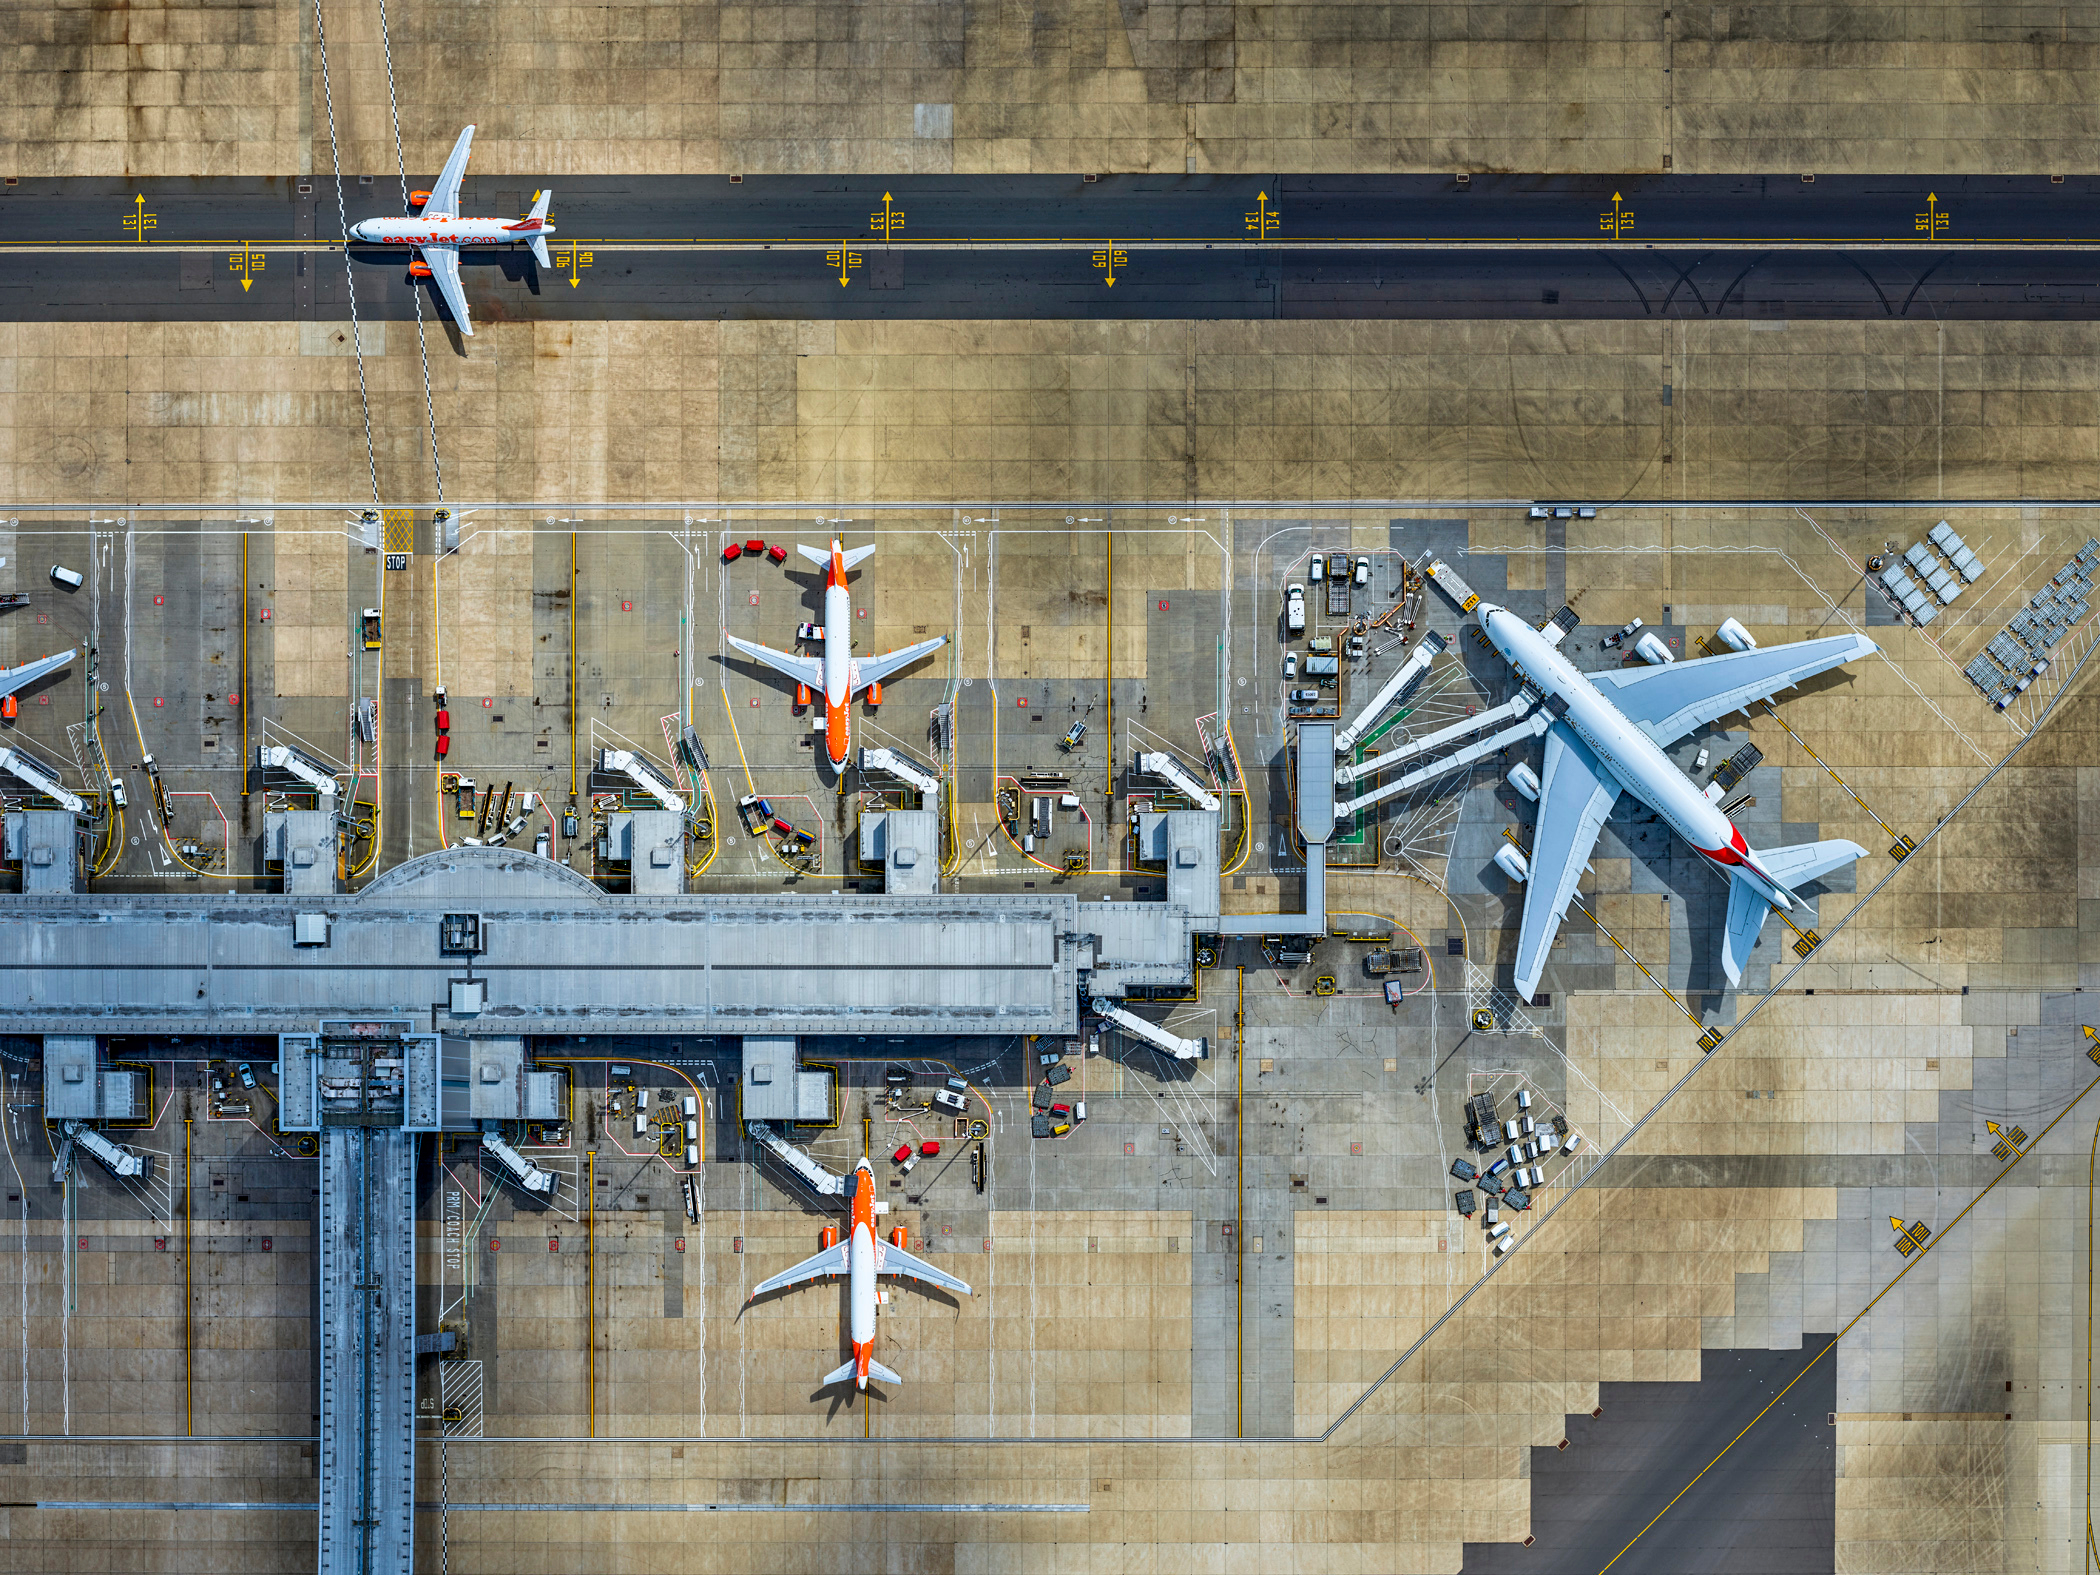 how to get from heathrow airport to gatwick airport